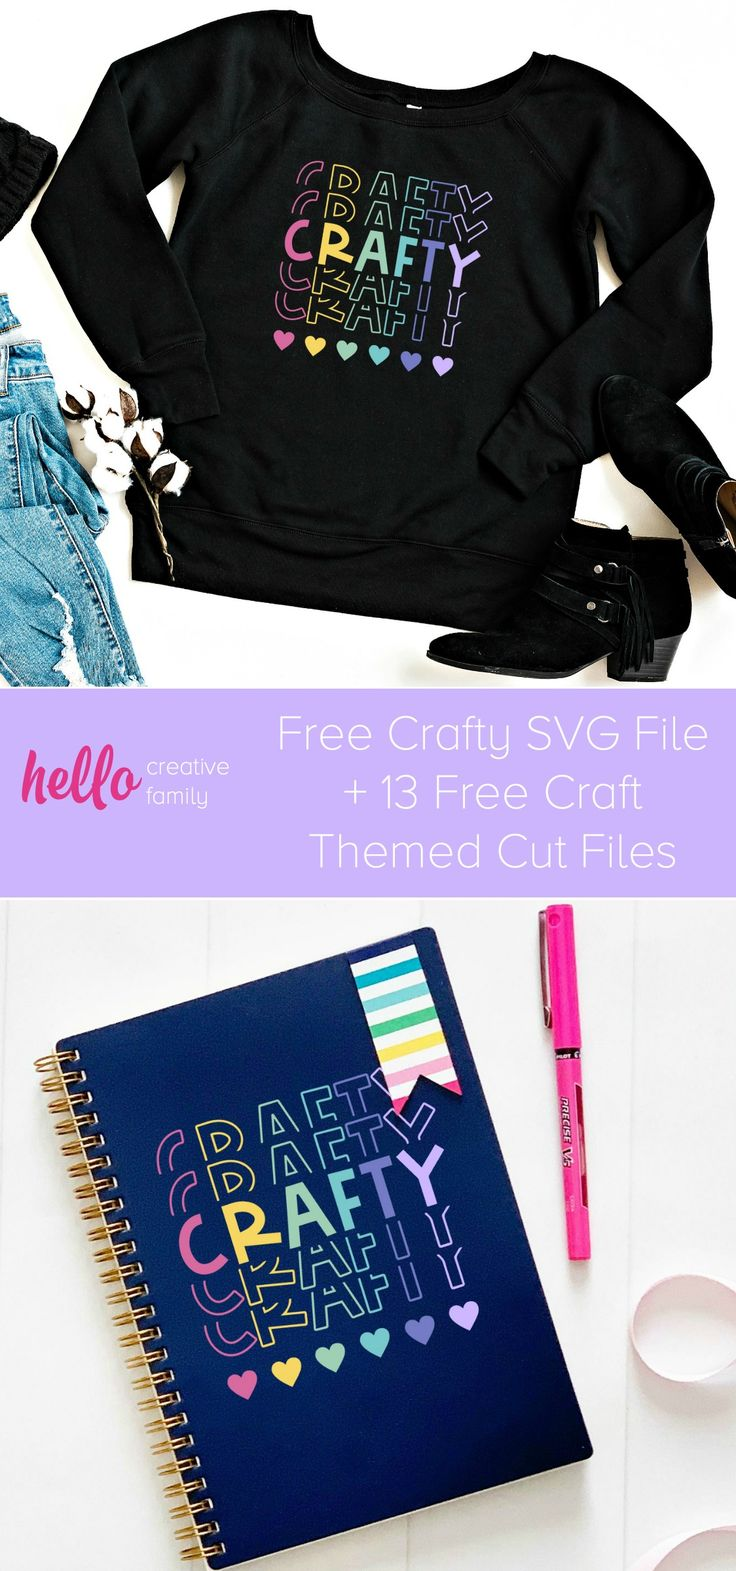 13 Free Craft SVG Files Our Gift To You! Diy shirt, Svg